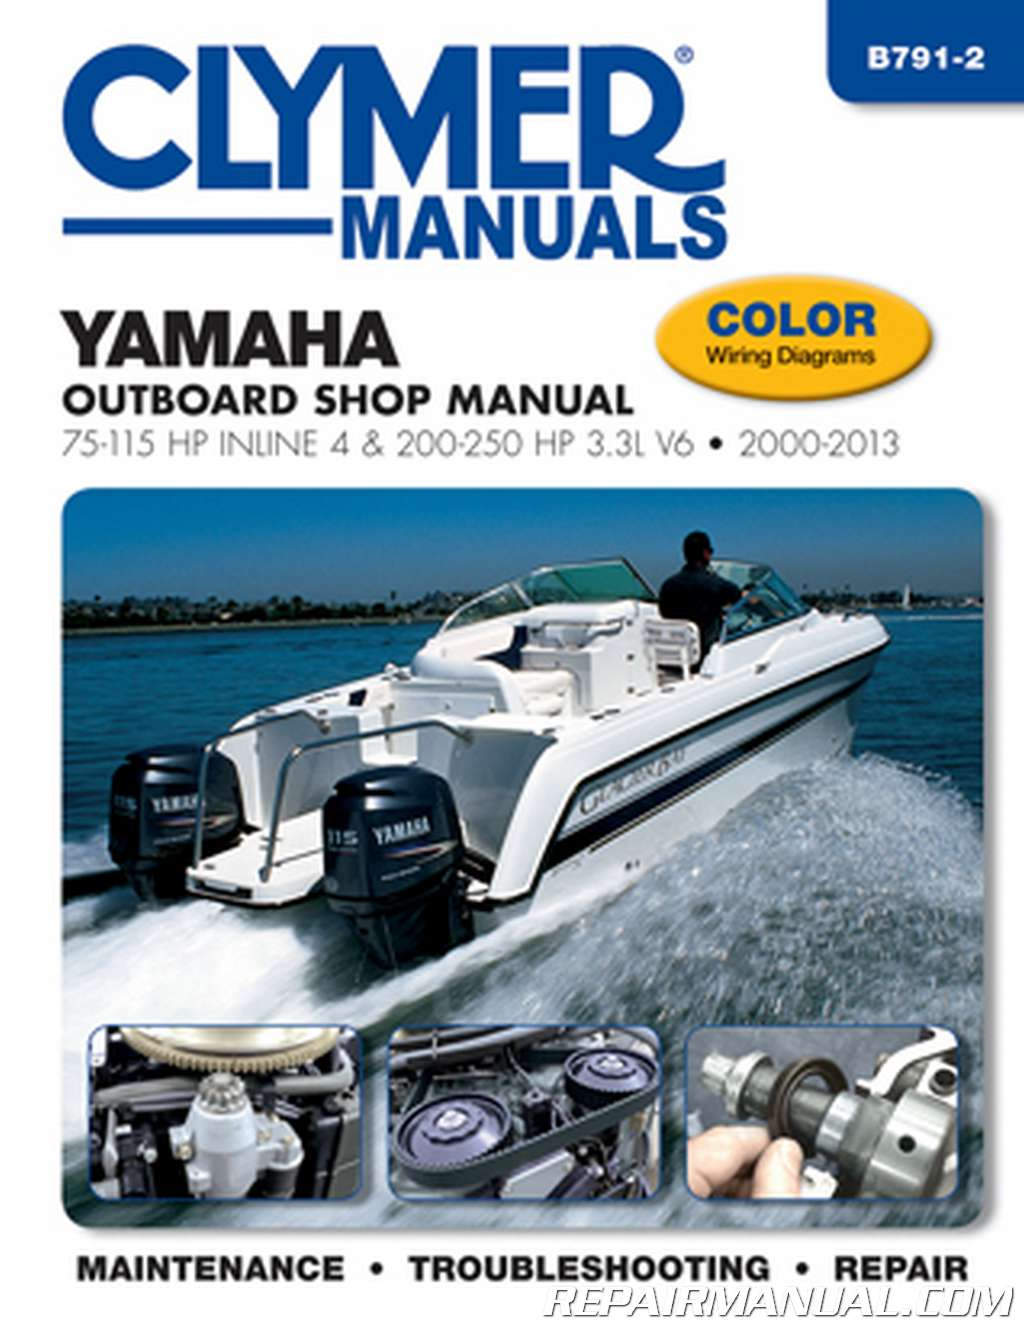 2000 2013 yamaha outboard shop manual 75 115 hp inline 4 and 200 250 rh repairmanual com yamaha outboard service repair manual pdf yamaha marine service manuals